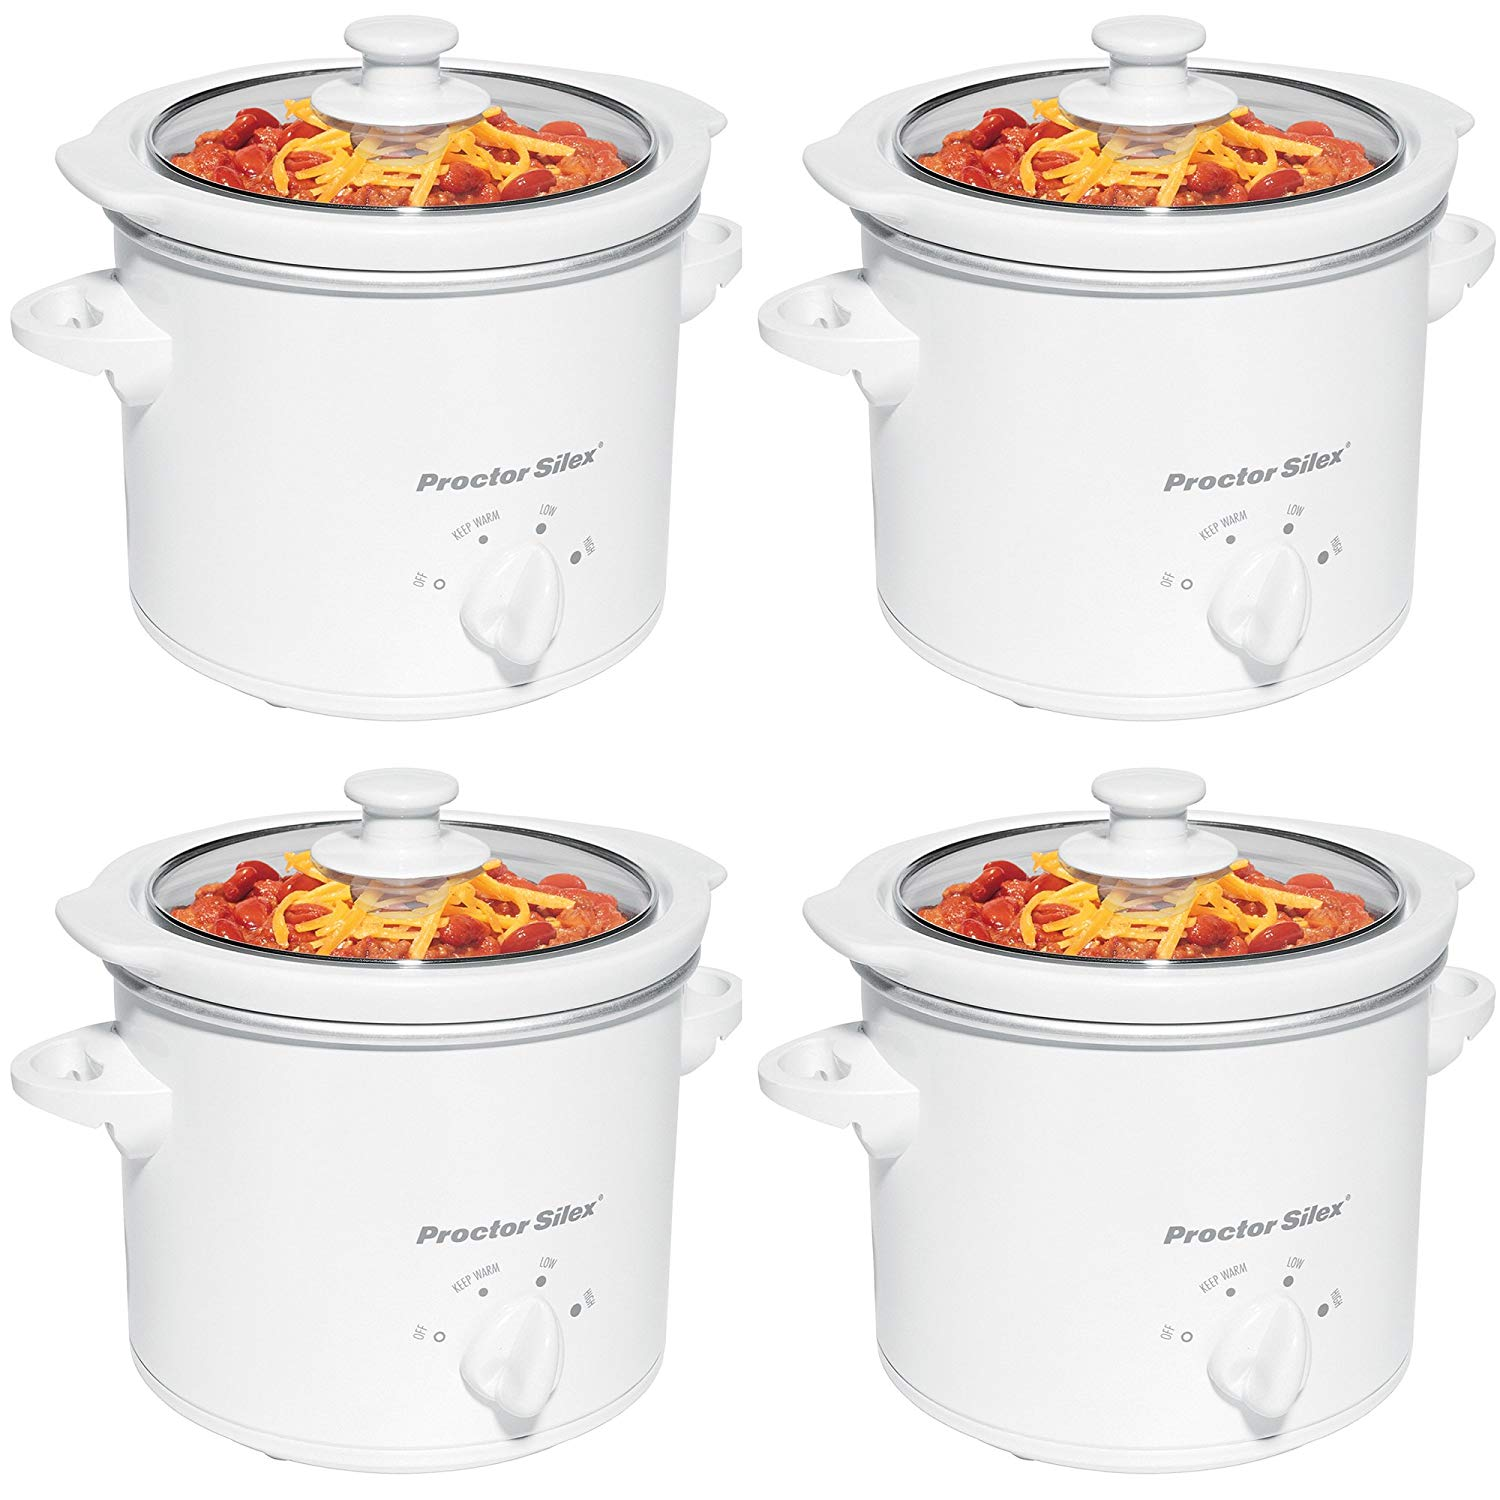 Proctor-Silex 1.5-Quart Slow Cooker (4 Pack)